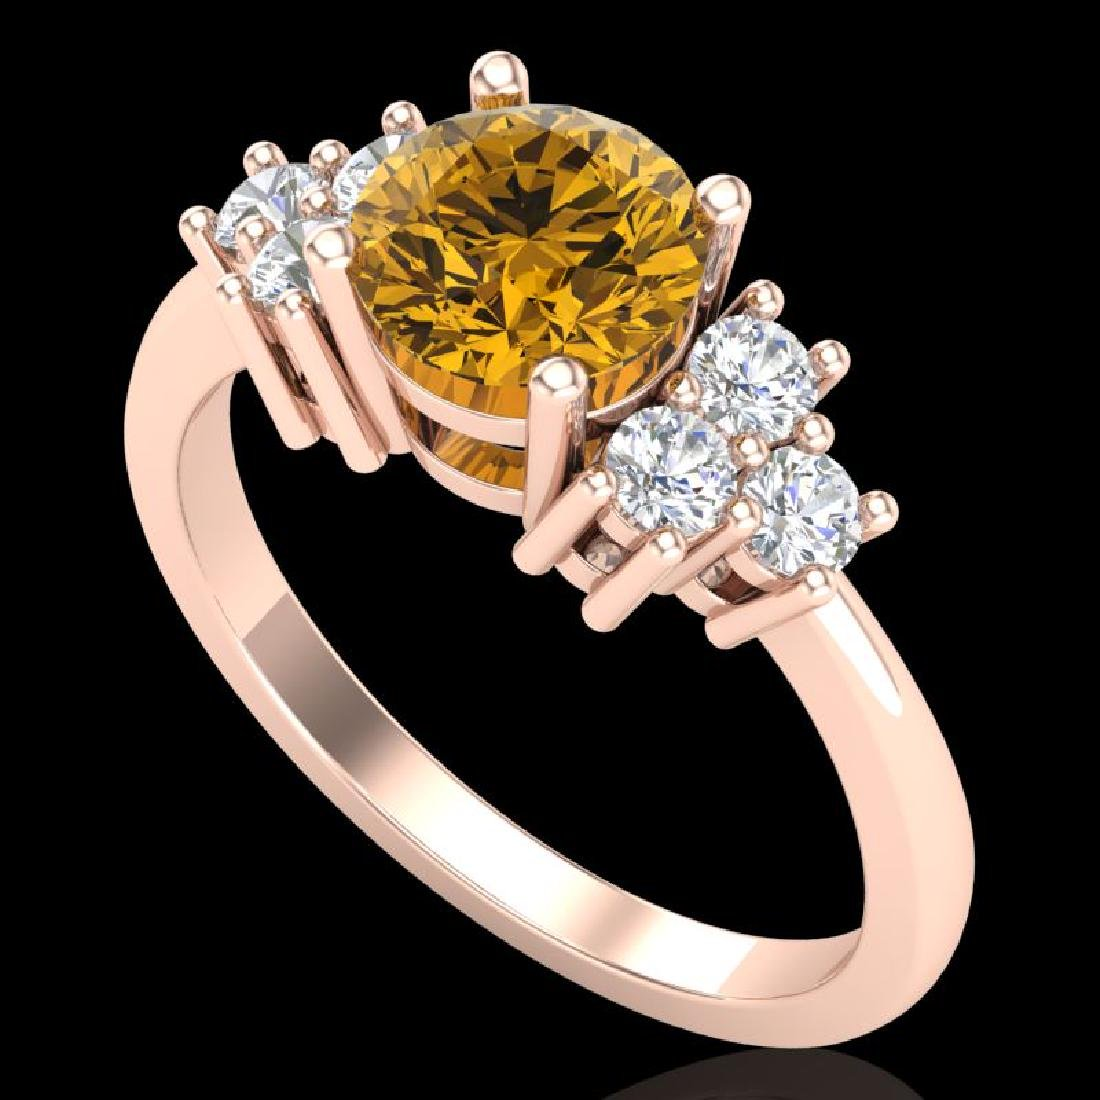 1.5 CTW Intense Fancy Yellow Diamond Solitaire Classic